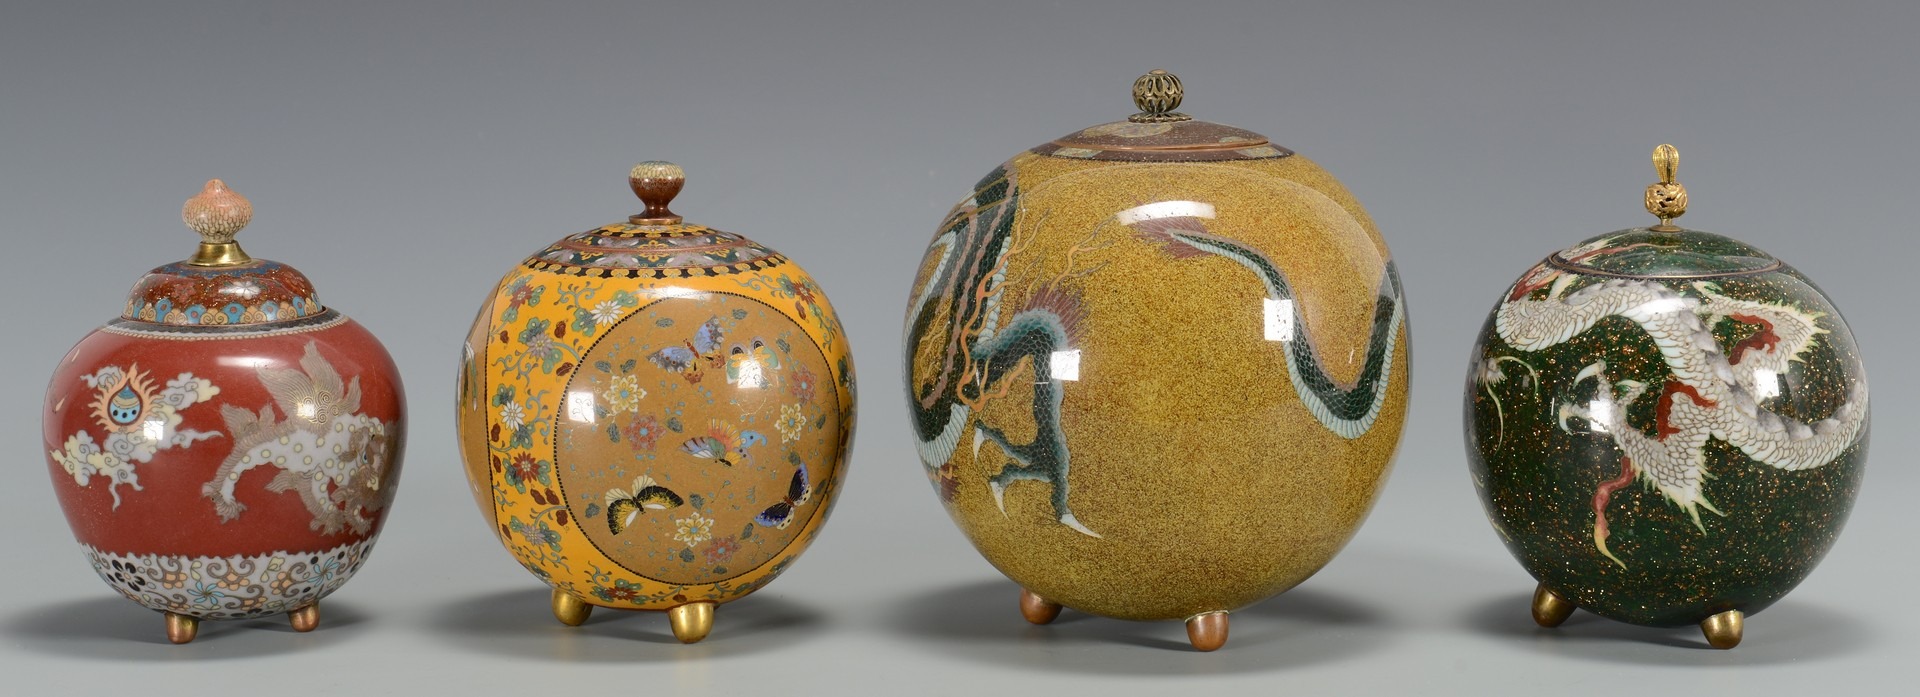 Lot 3594206: 4 Cloisonne Covered Jars w/ Dragon Designs